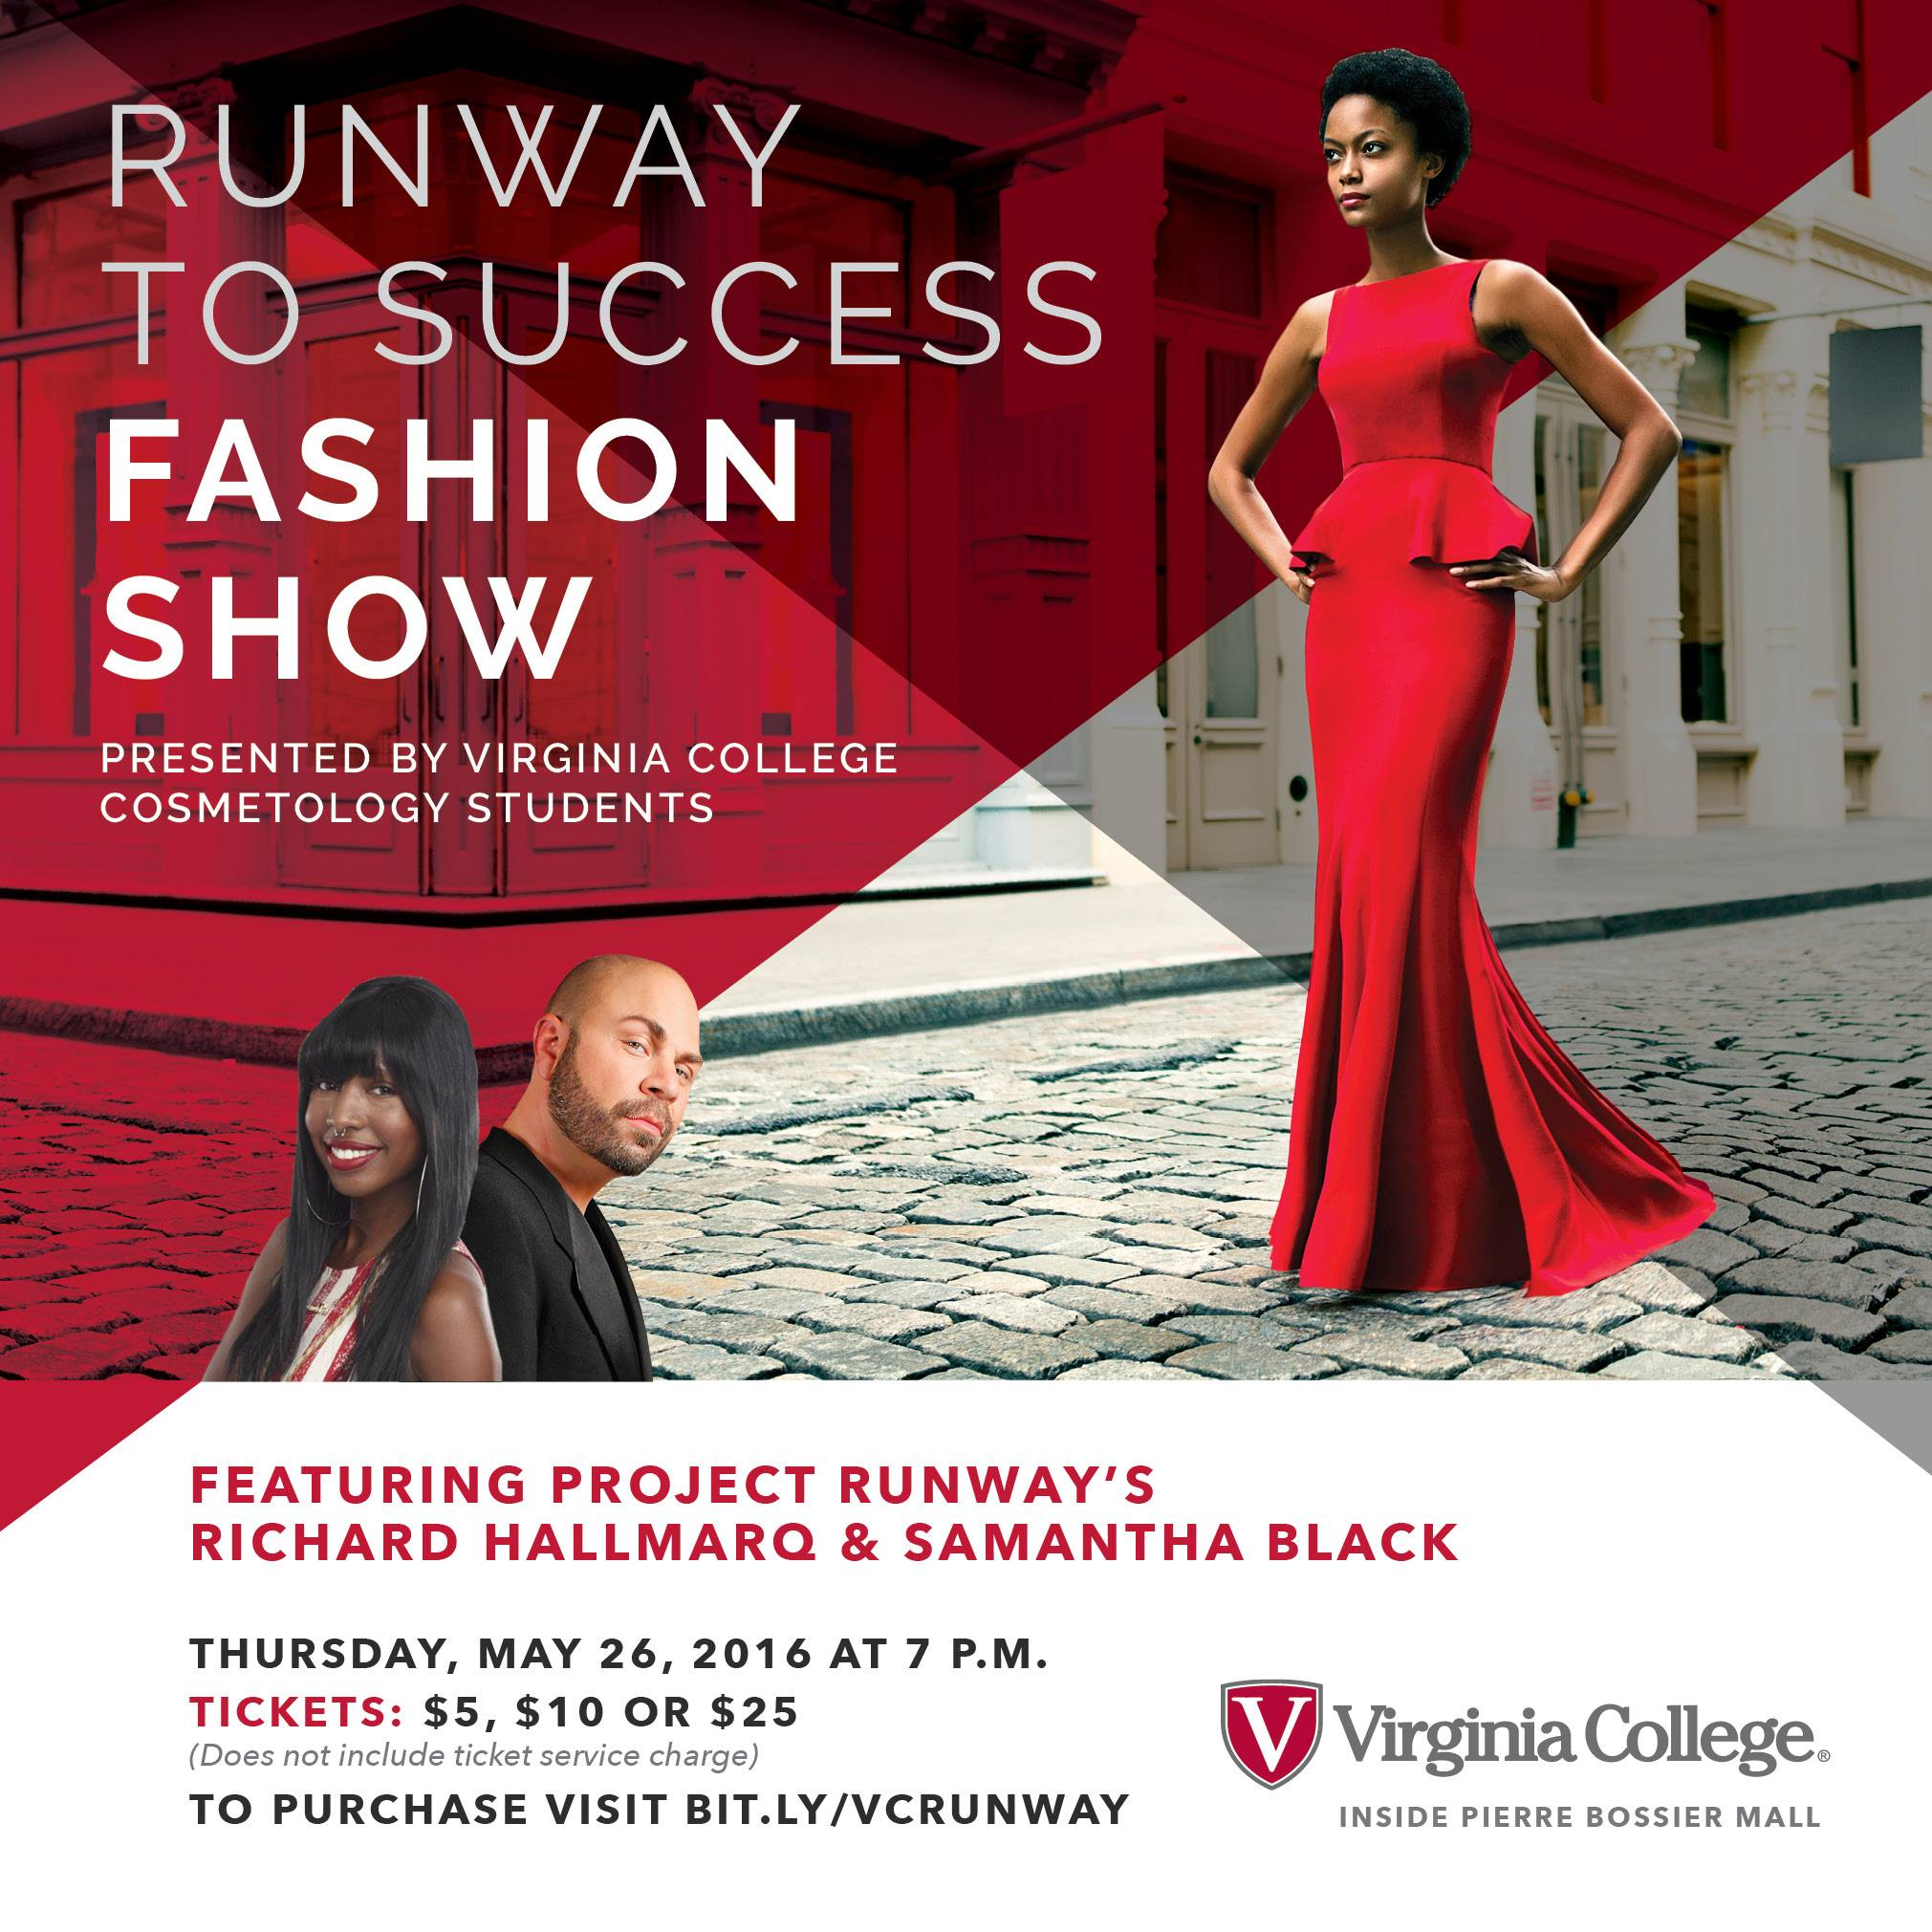 Virginia College To Host Runway To Success Fashion Show